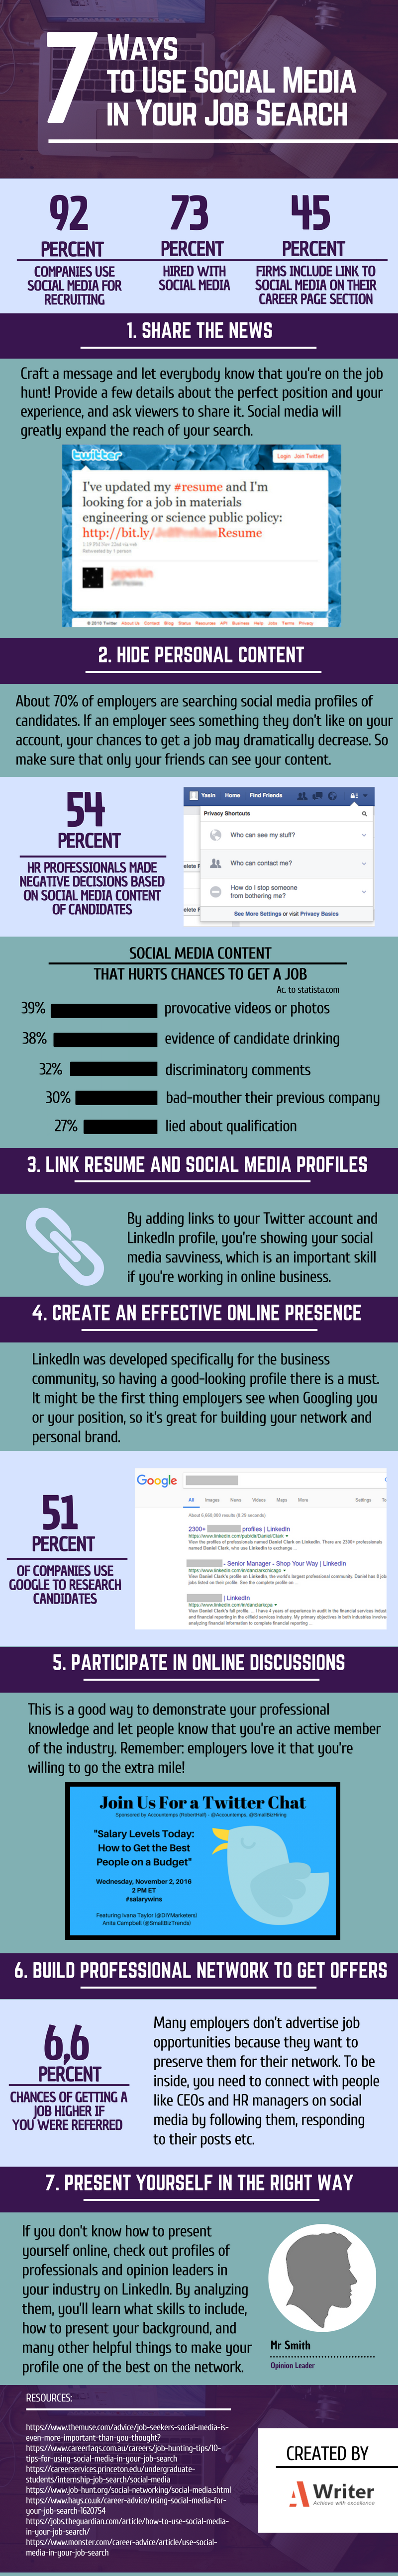 7 Ways to Use Social Media in Your Job Search_full